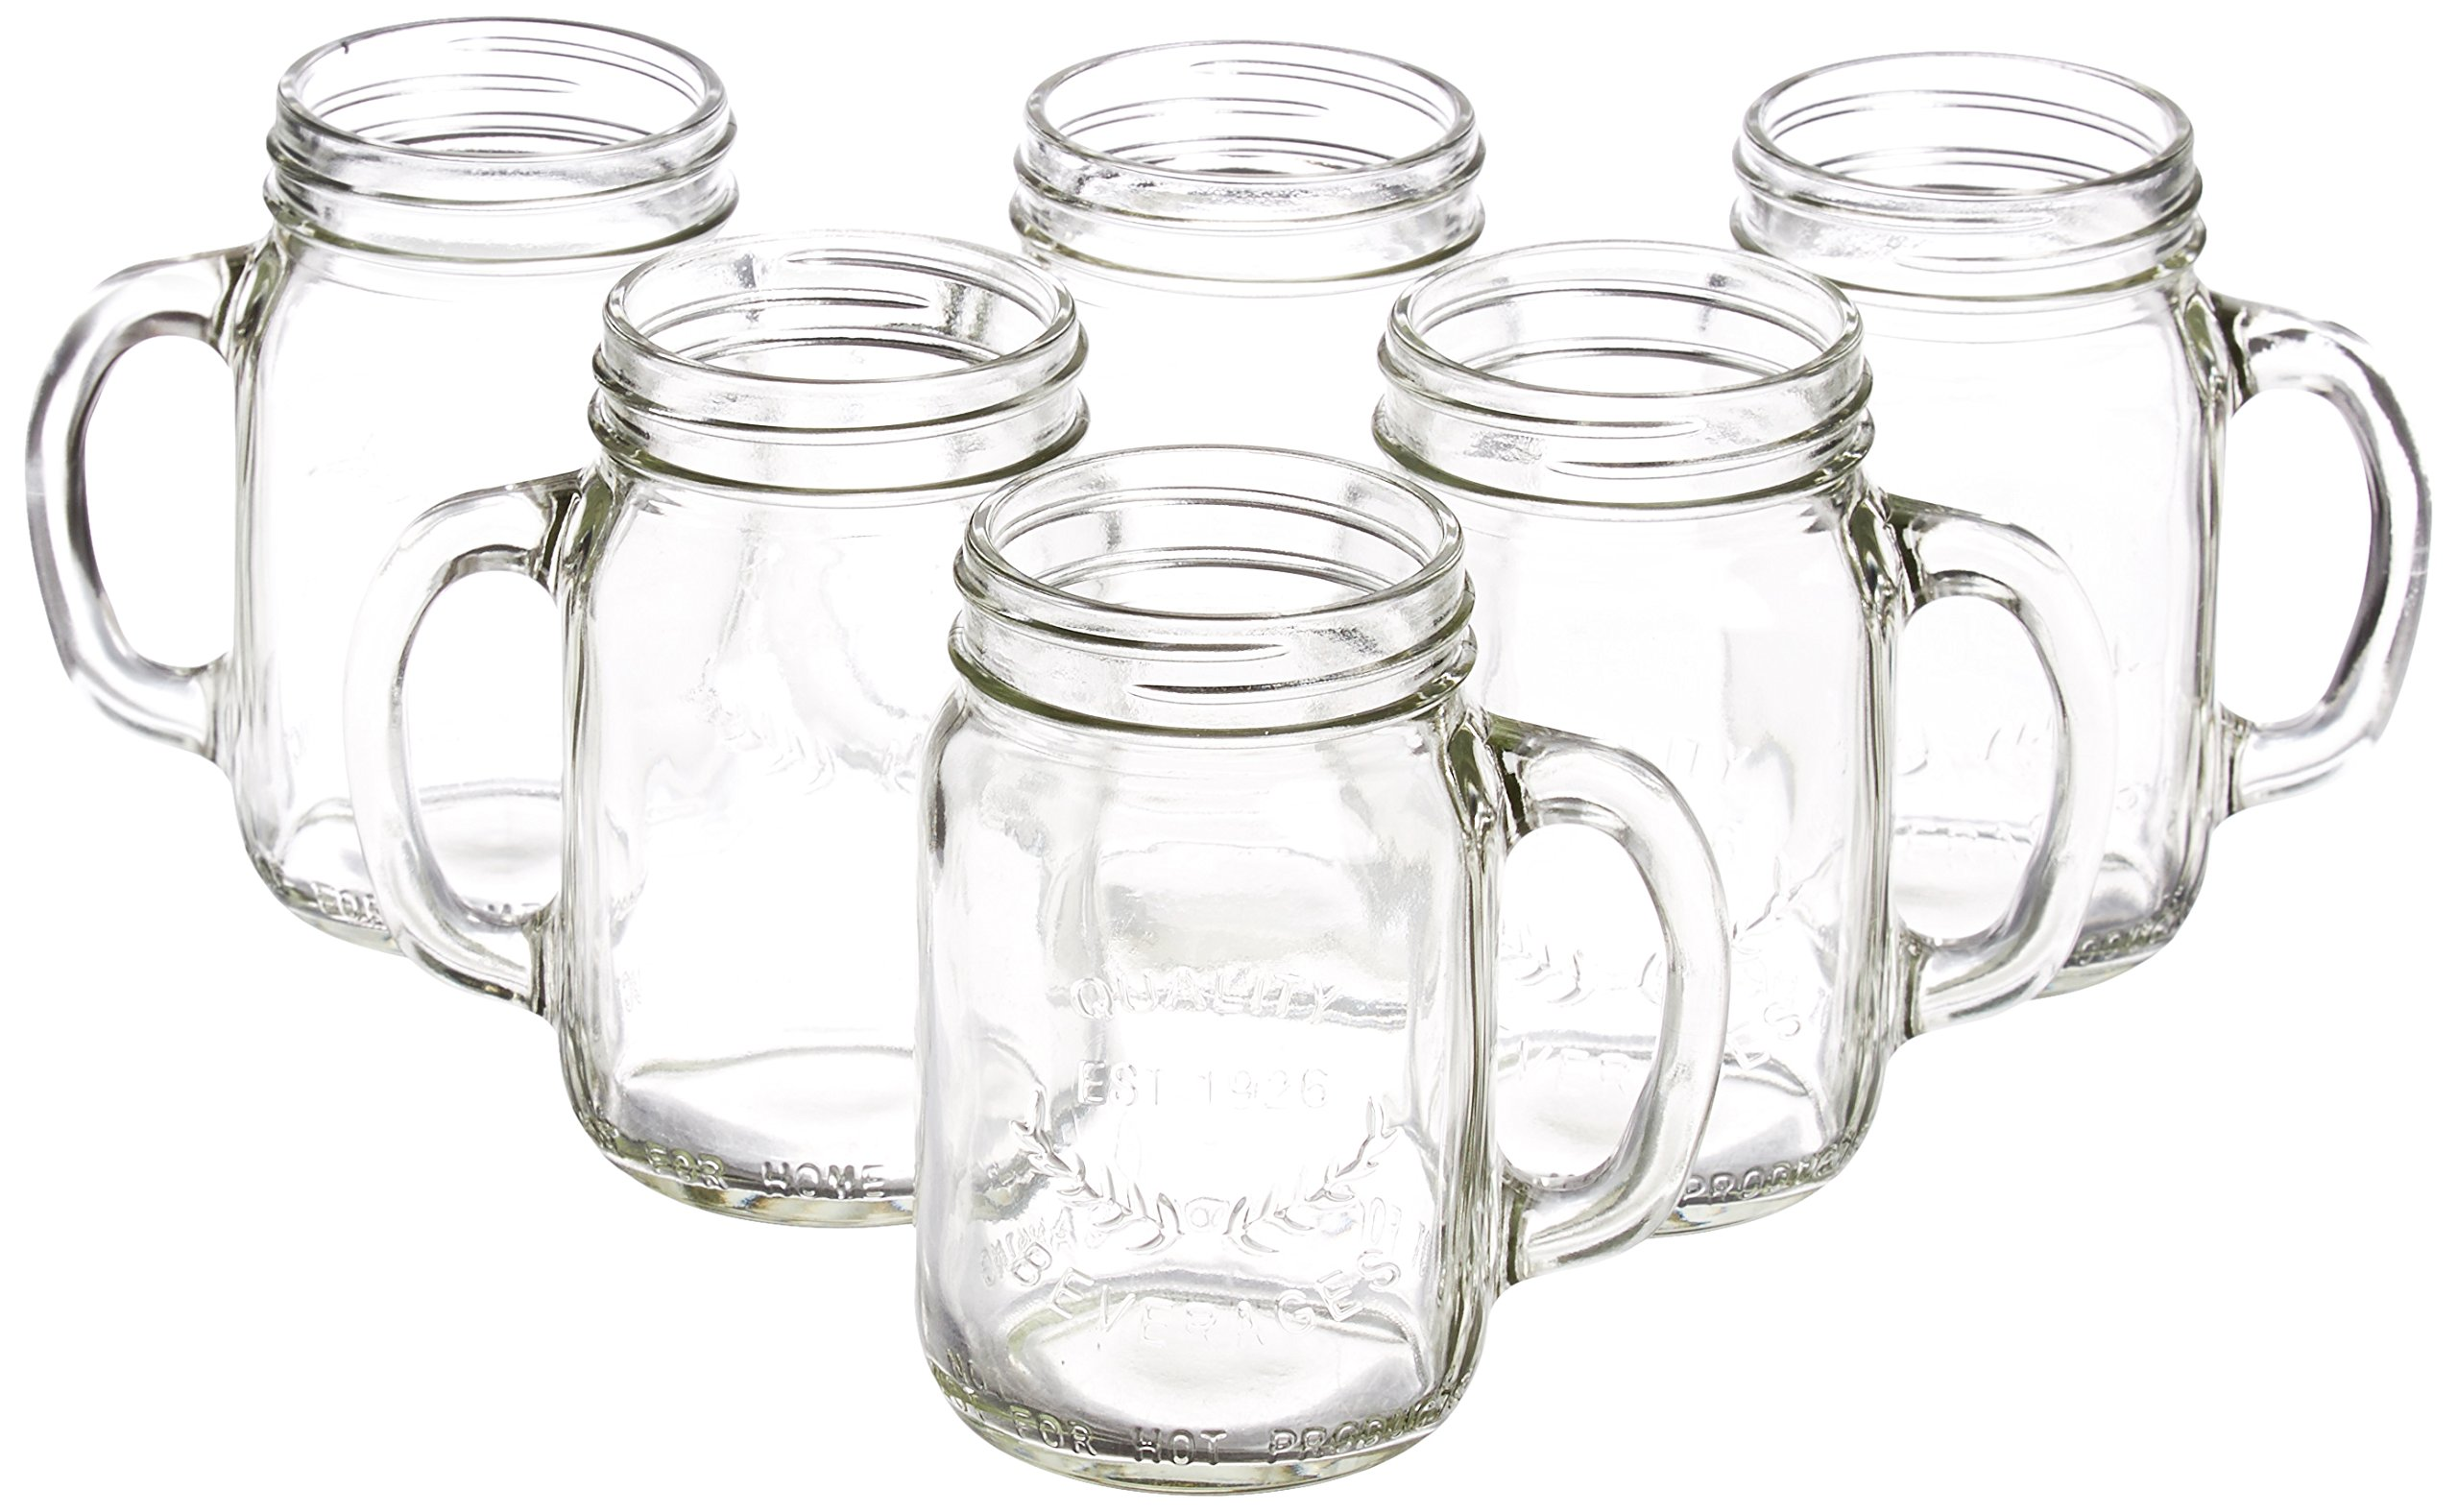 Artland Masonware Beverage Jar with Chiller and Infuser, 6 Mason Jars, Faux Wicker Stand by ARTLAND (Image #4)